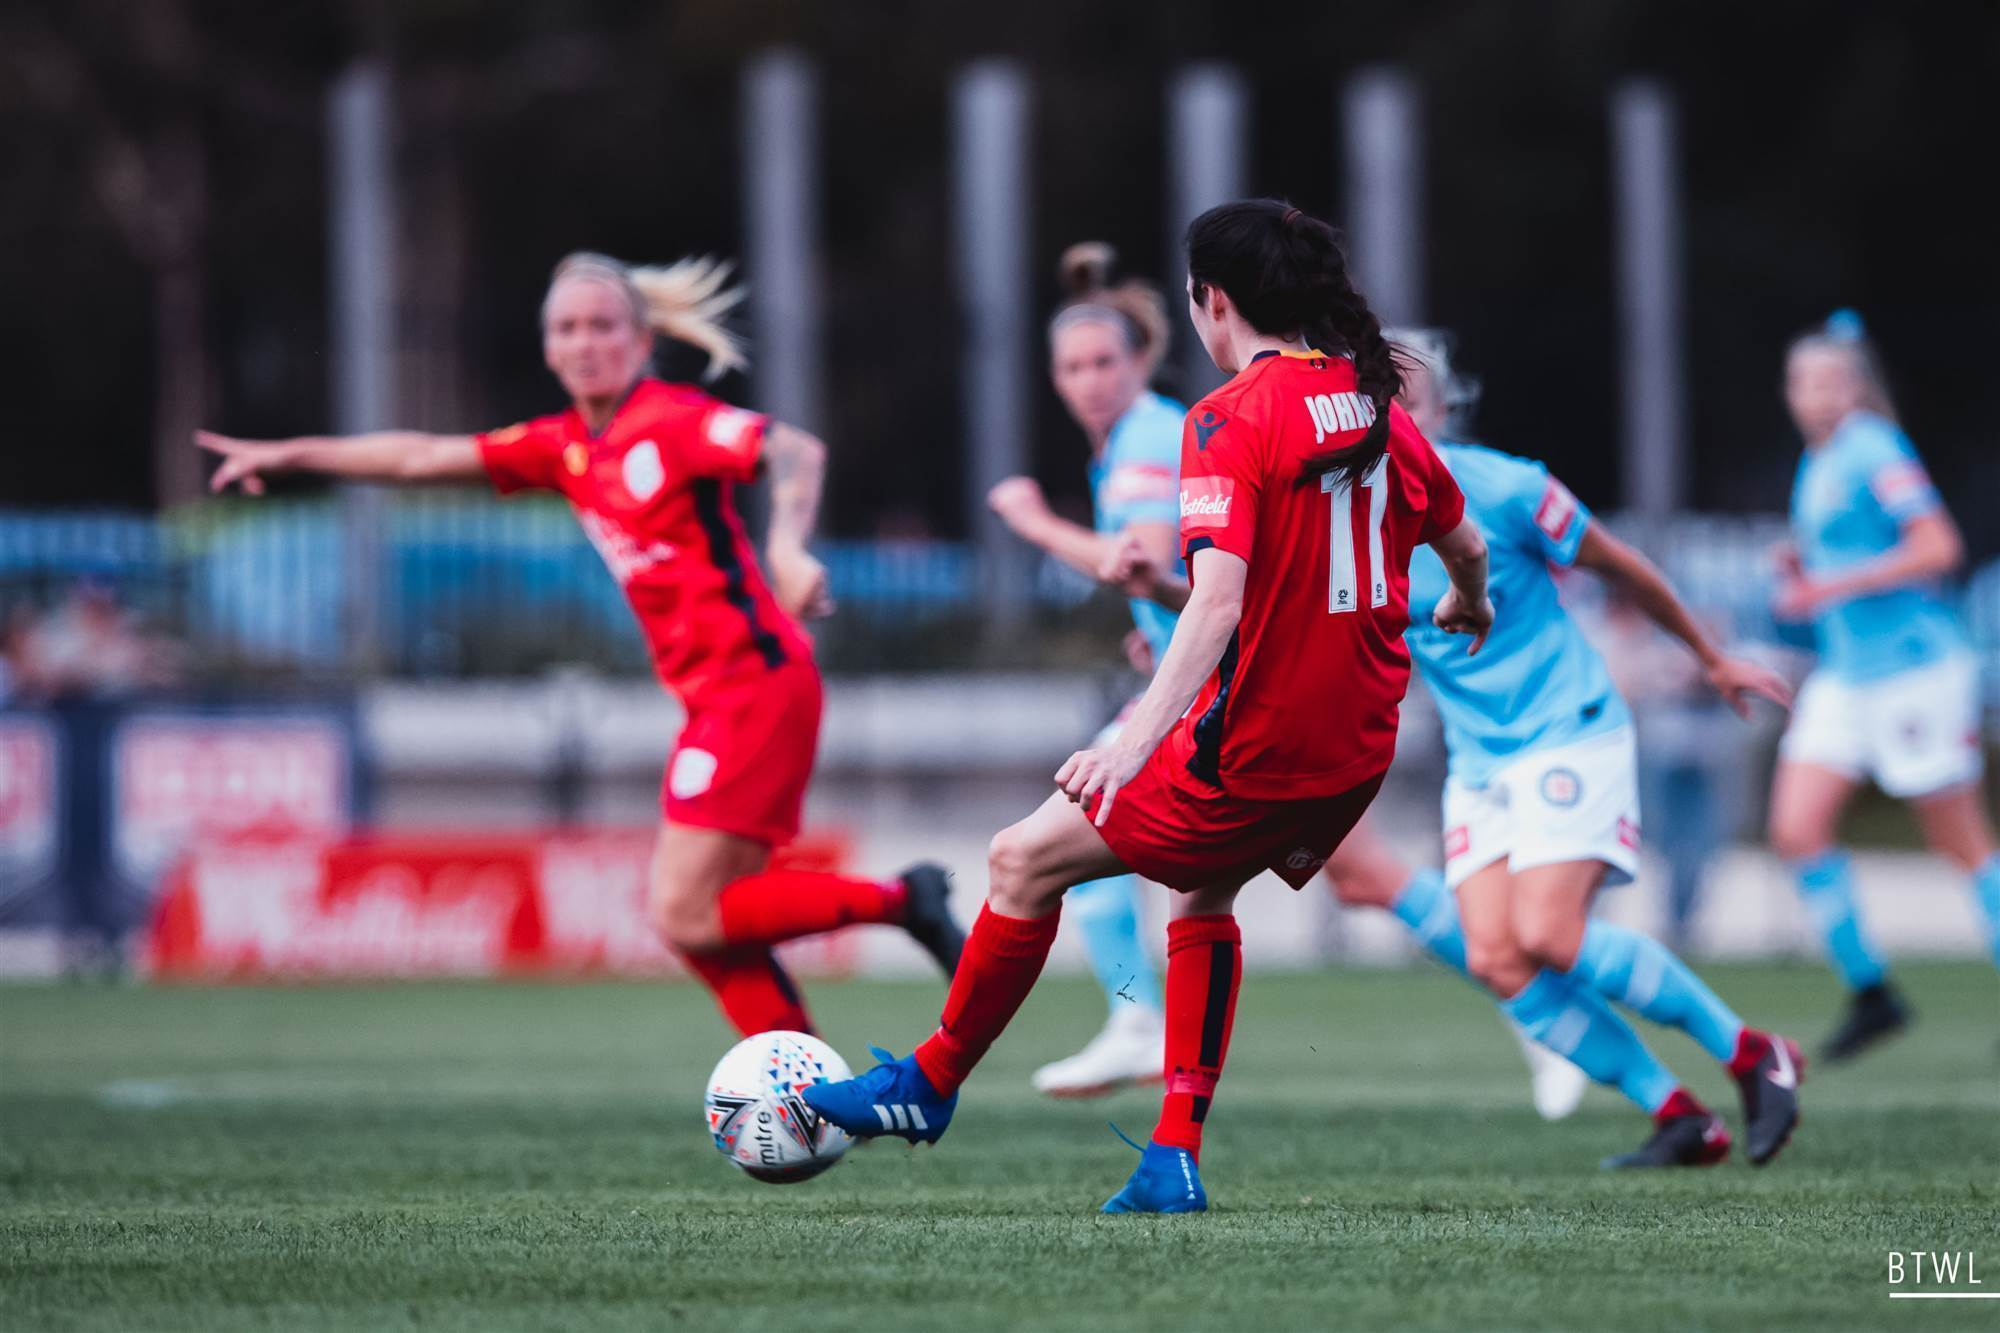 Melbourne city vs adelaide united bettingexpert football new fa betting rules of texas